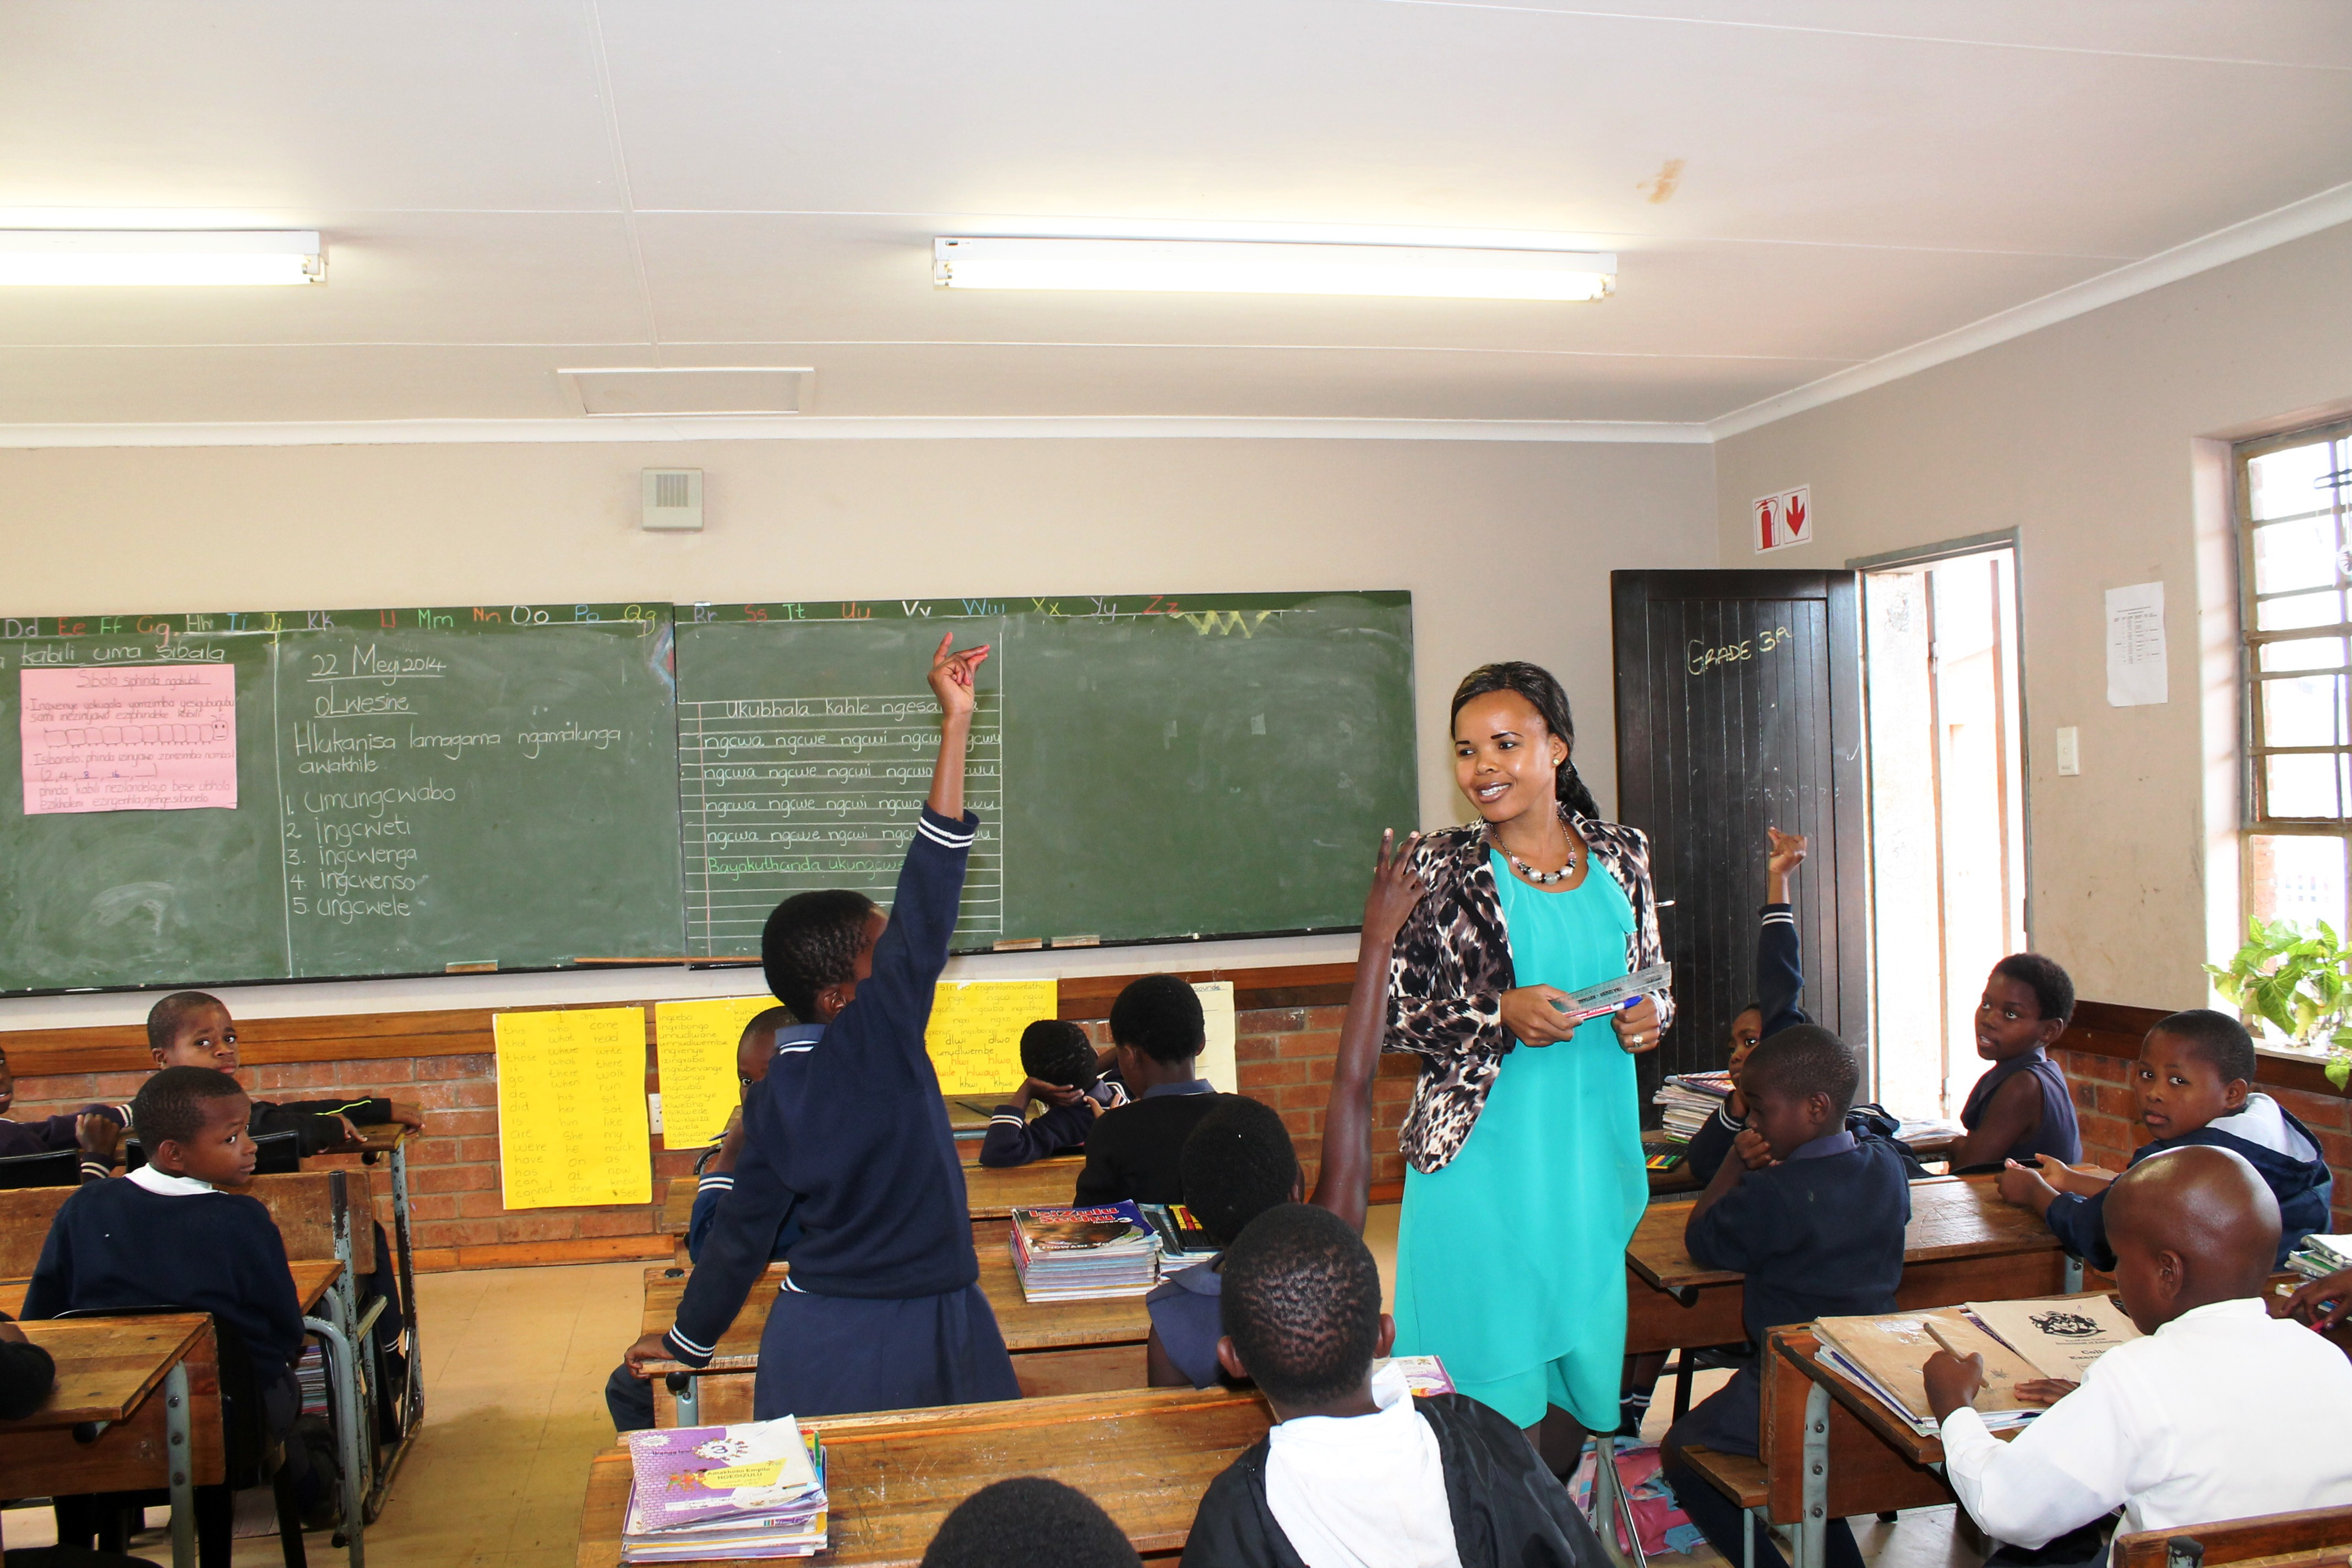 Work-integrated learning in initial teacher education: a model worth